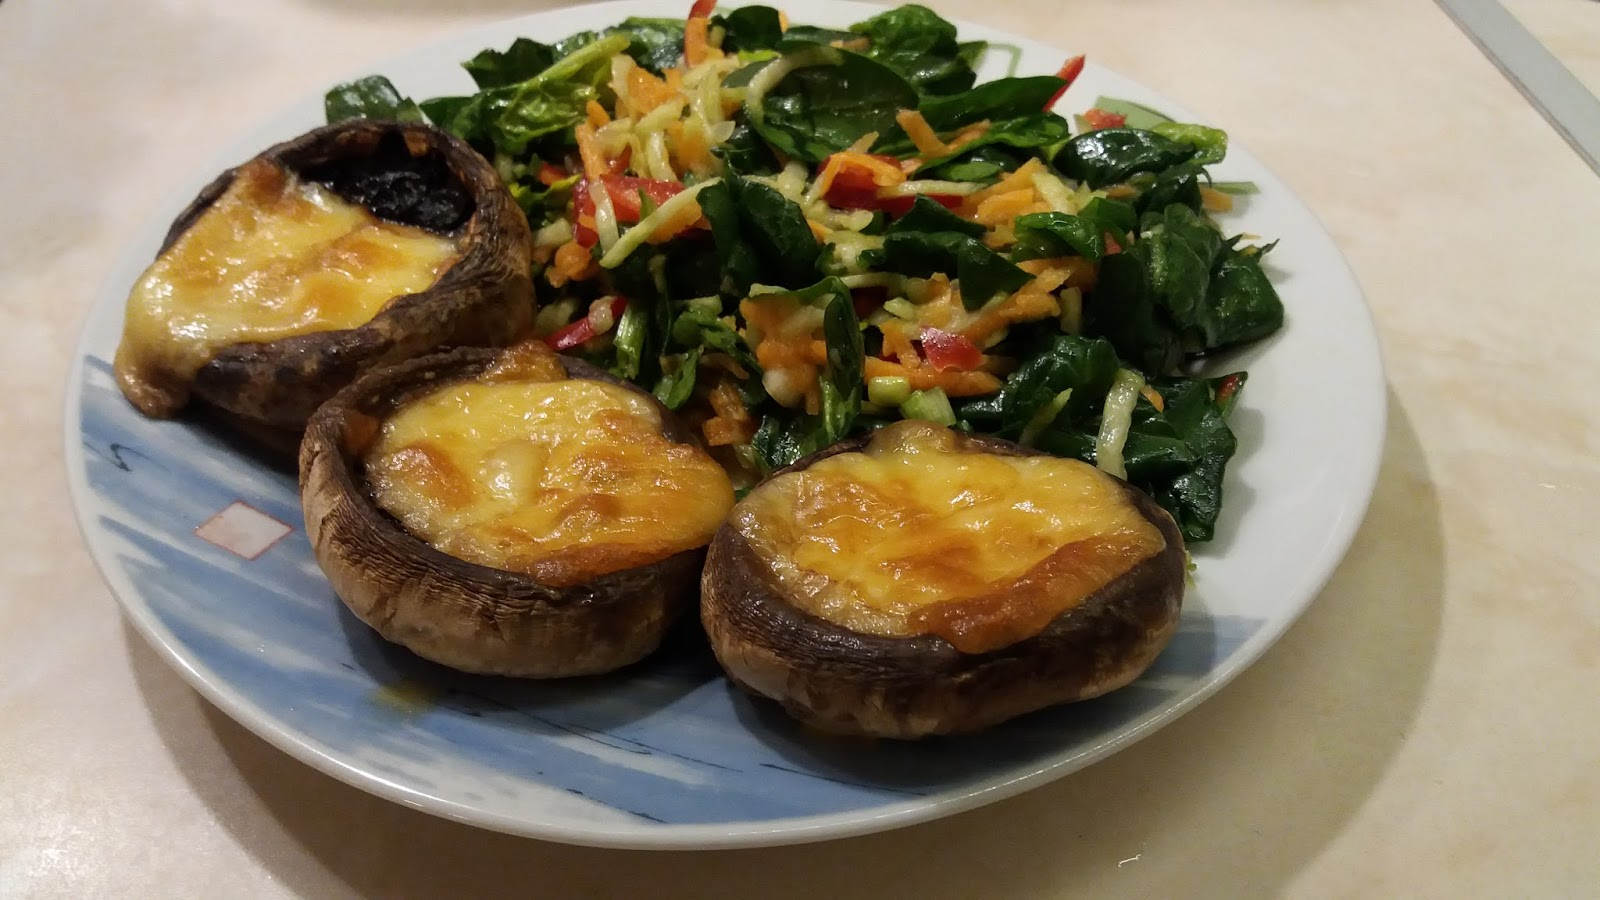 YELLOW CHEESE STUFFED MUSHROOMS IN AN OVEN